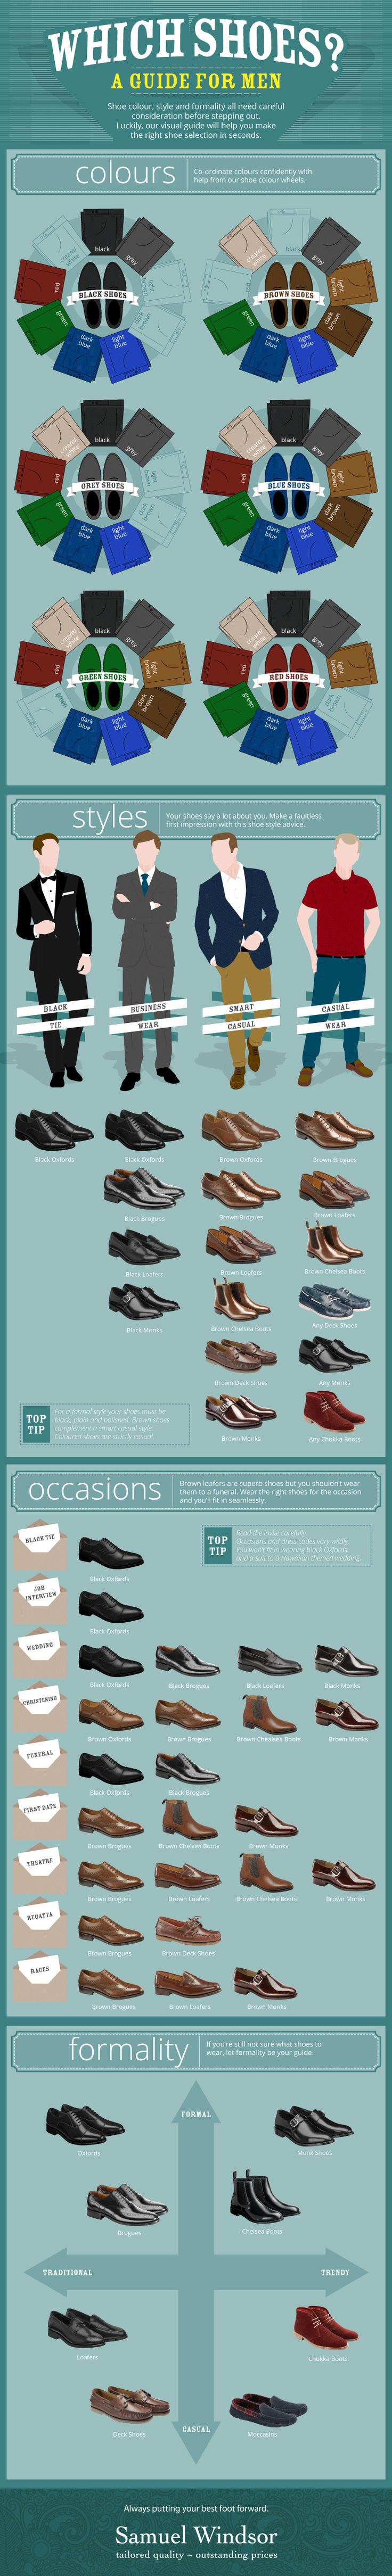 Which Shoes? A Guide For Men #Infographic #Men #Shoes